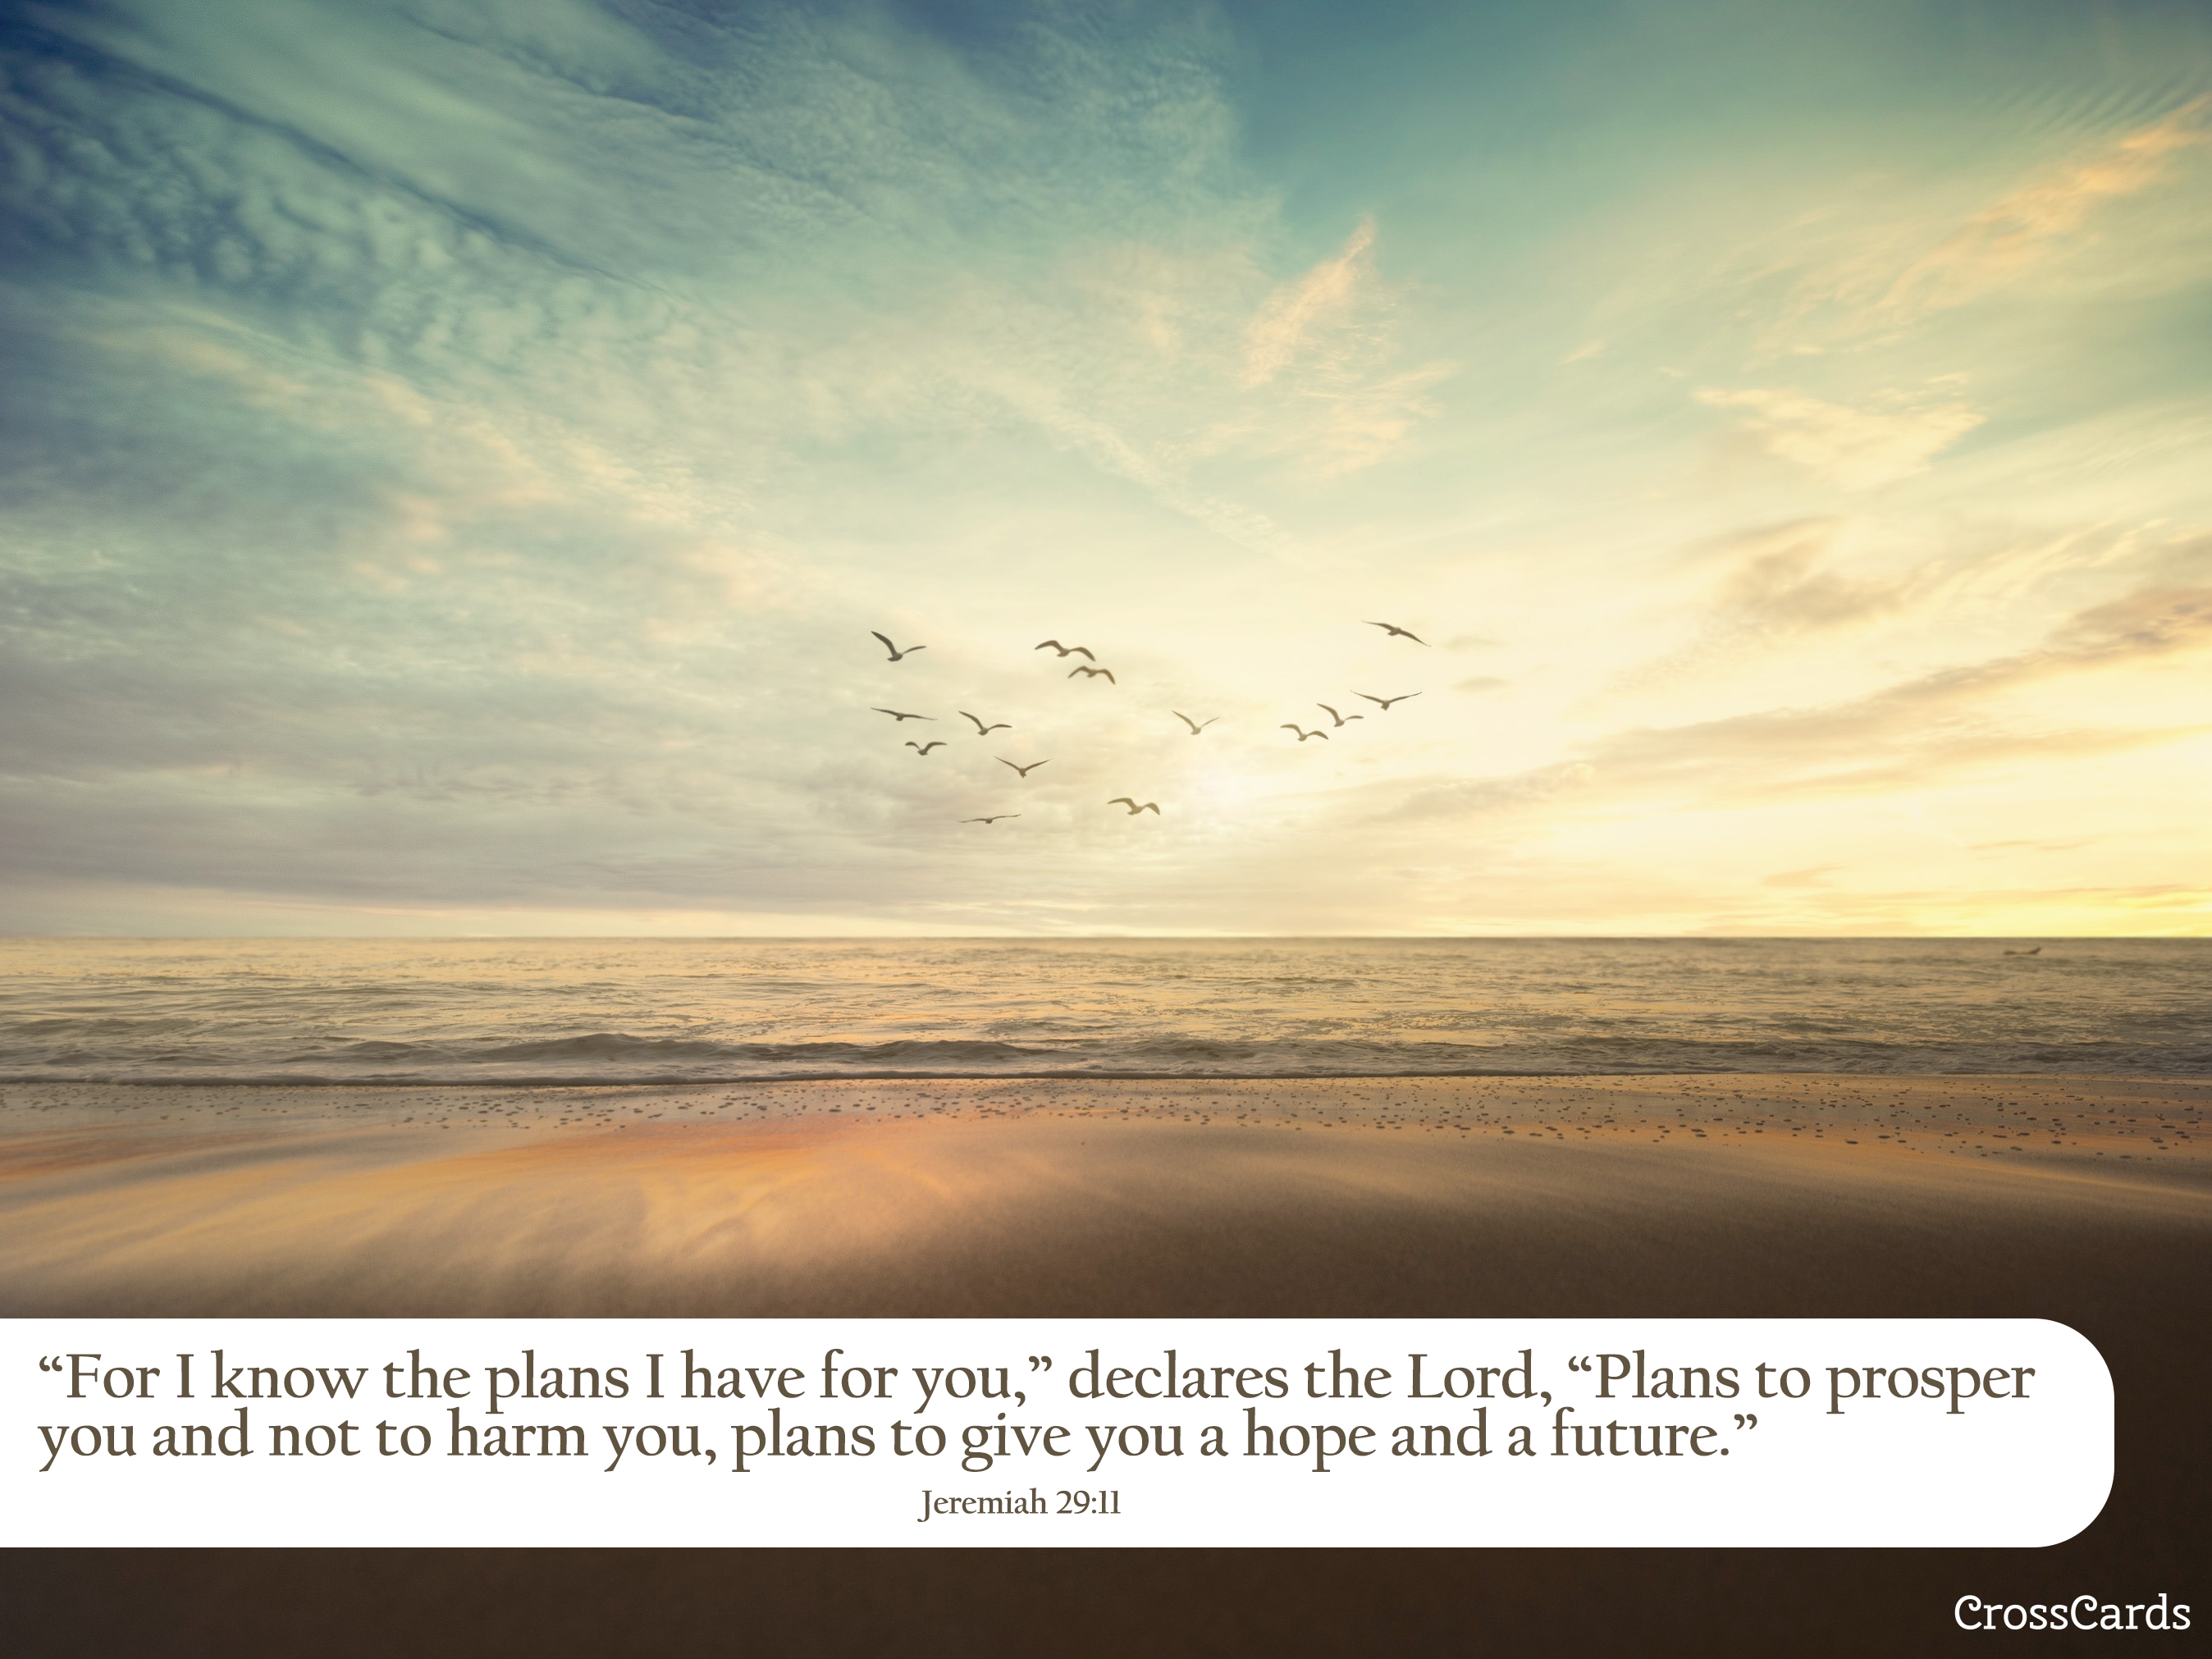 Jeremiah 29 11 A Hope And A Future Bible Verses And Scripture Wallpaper For Phone Or Computer